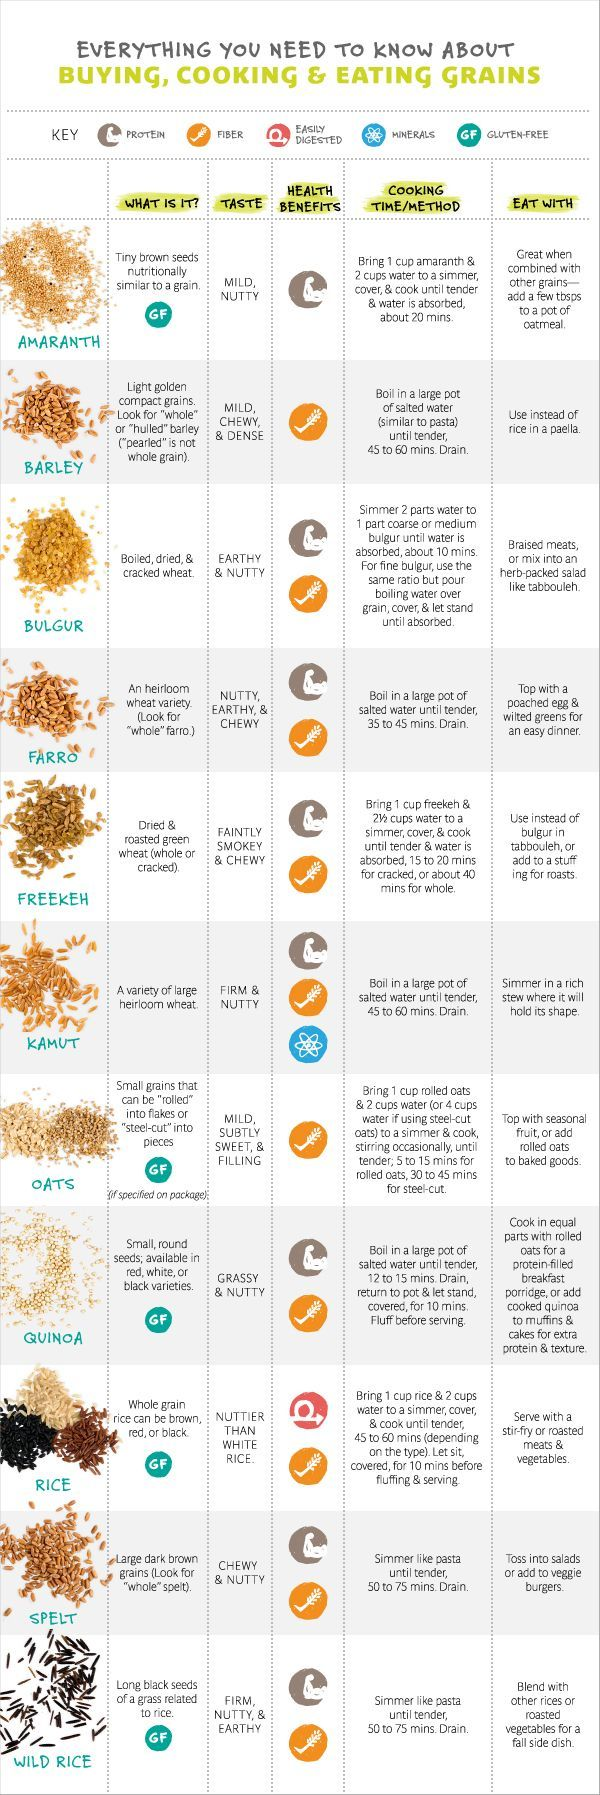 Don't know the difference between farro and freekeh? Kamut and quinoa? Check out this convenient chart.